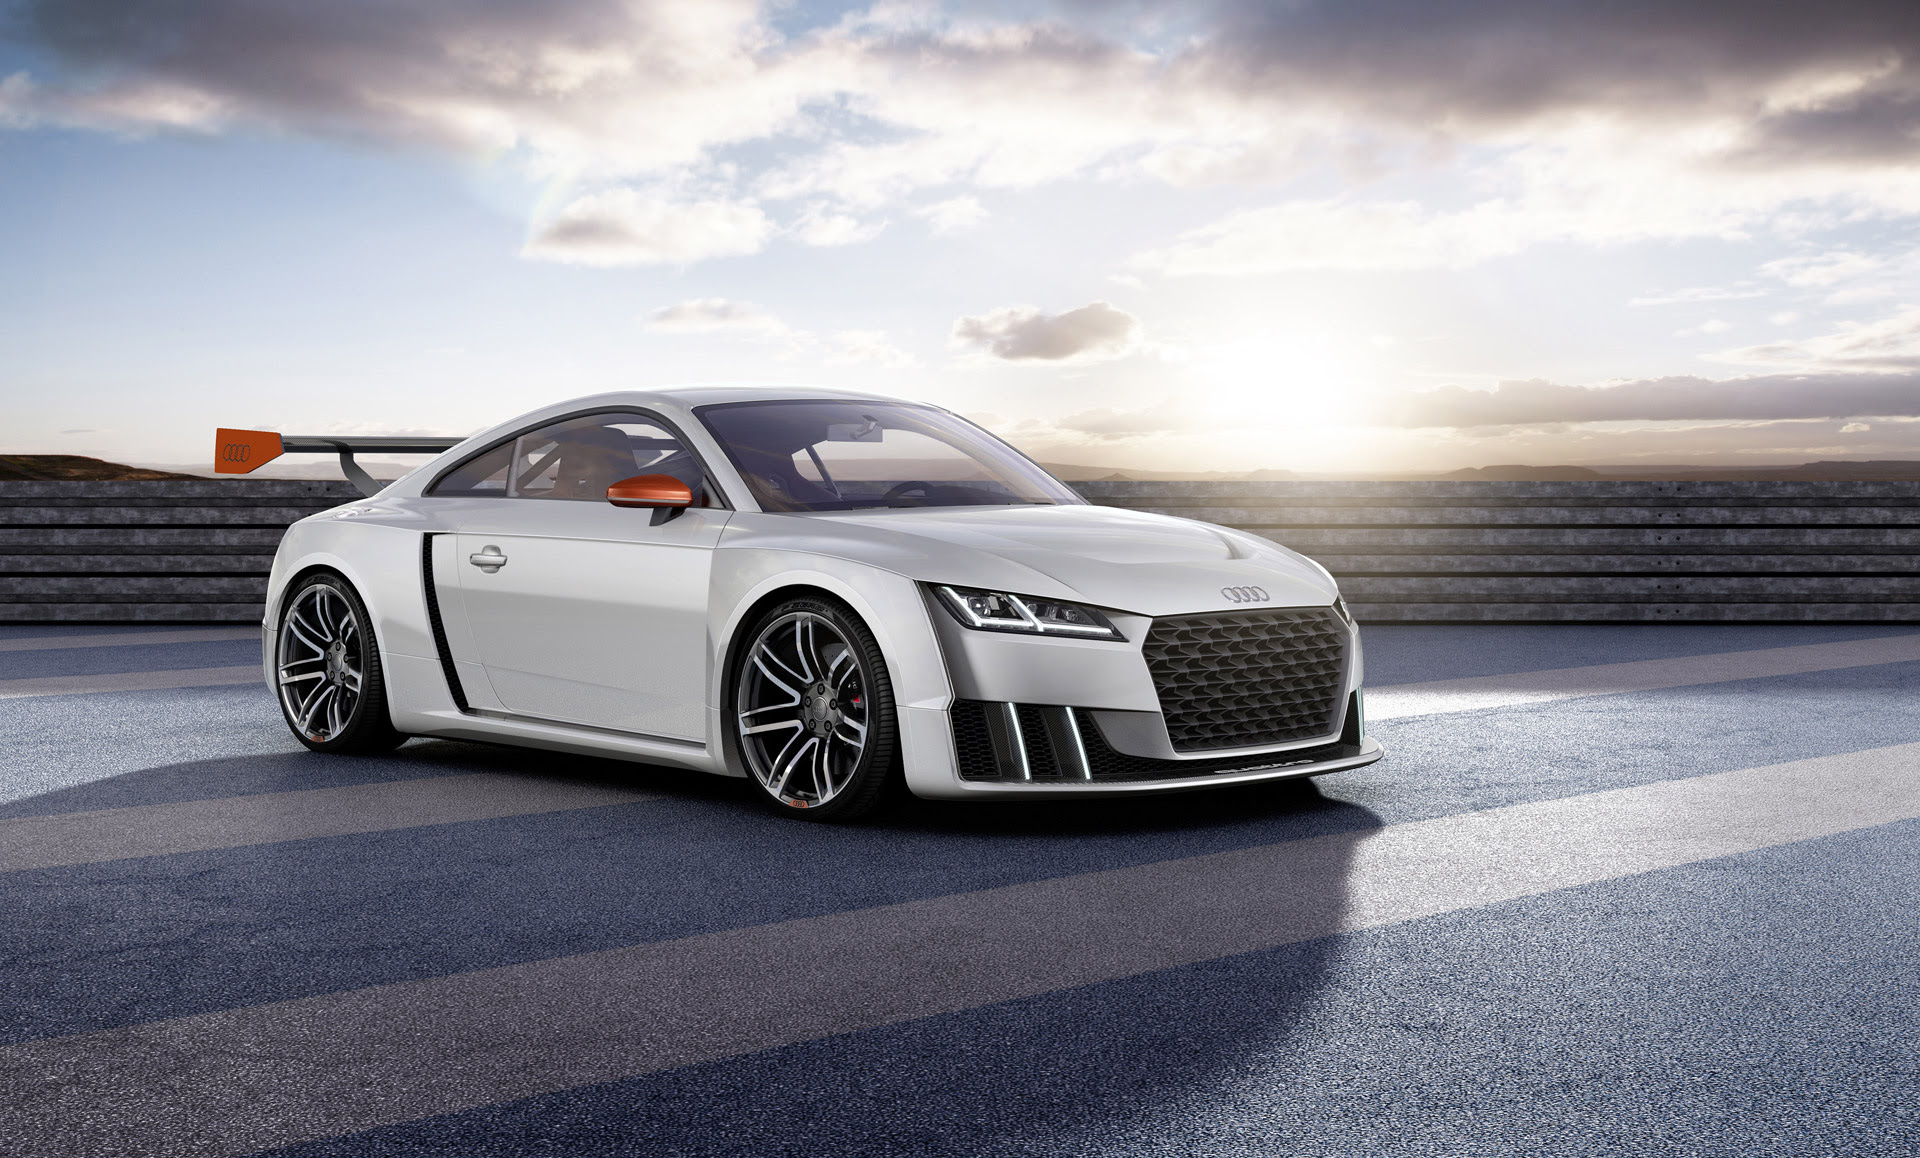 600-HP Audi TT Clubsport Turbo Concept Heads To Wörthersee ...